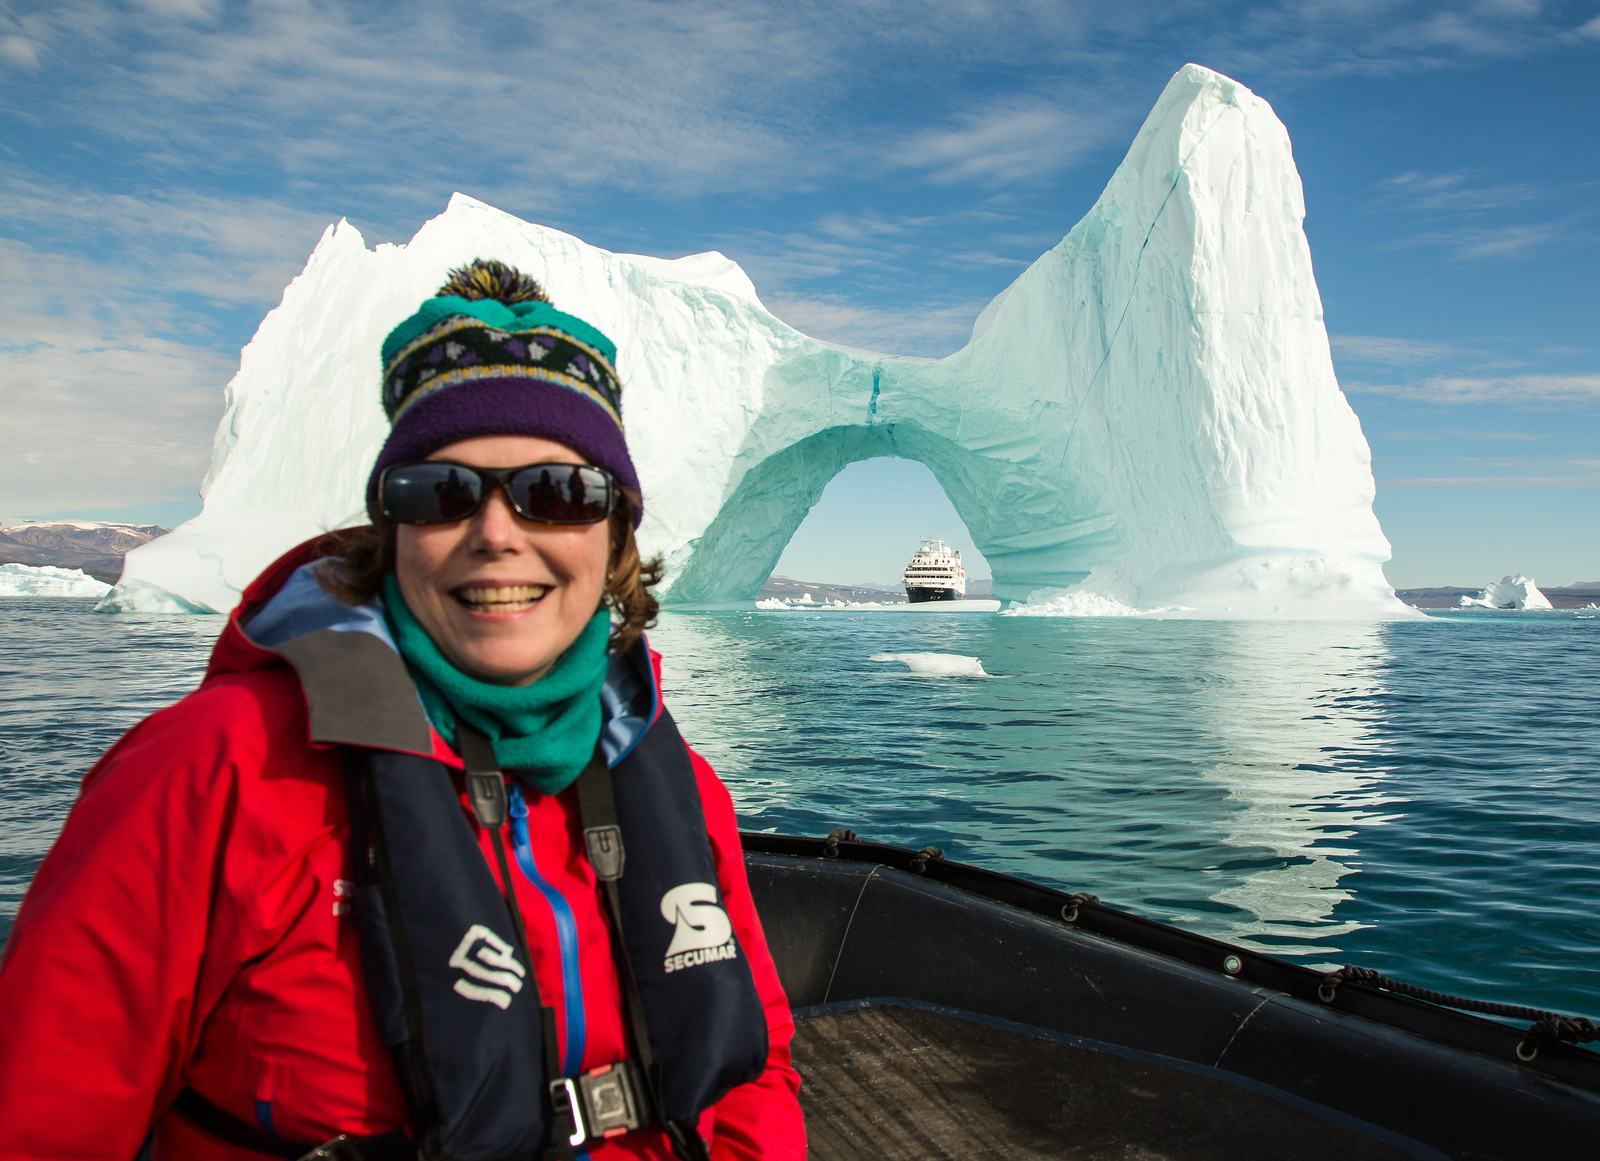 Explore icebergs on an expedition cruise in Greenland. Read more about this fun, boomer vacation idea. #cruise #Greenland #boomertravel